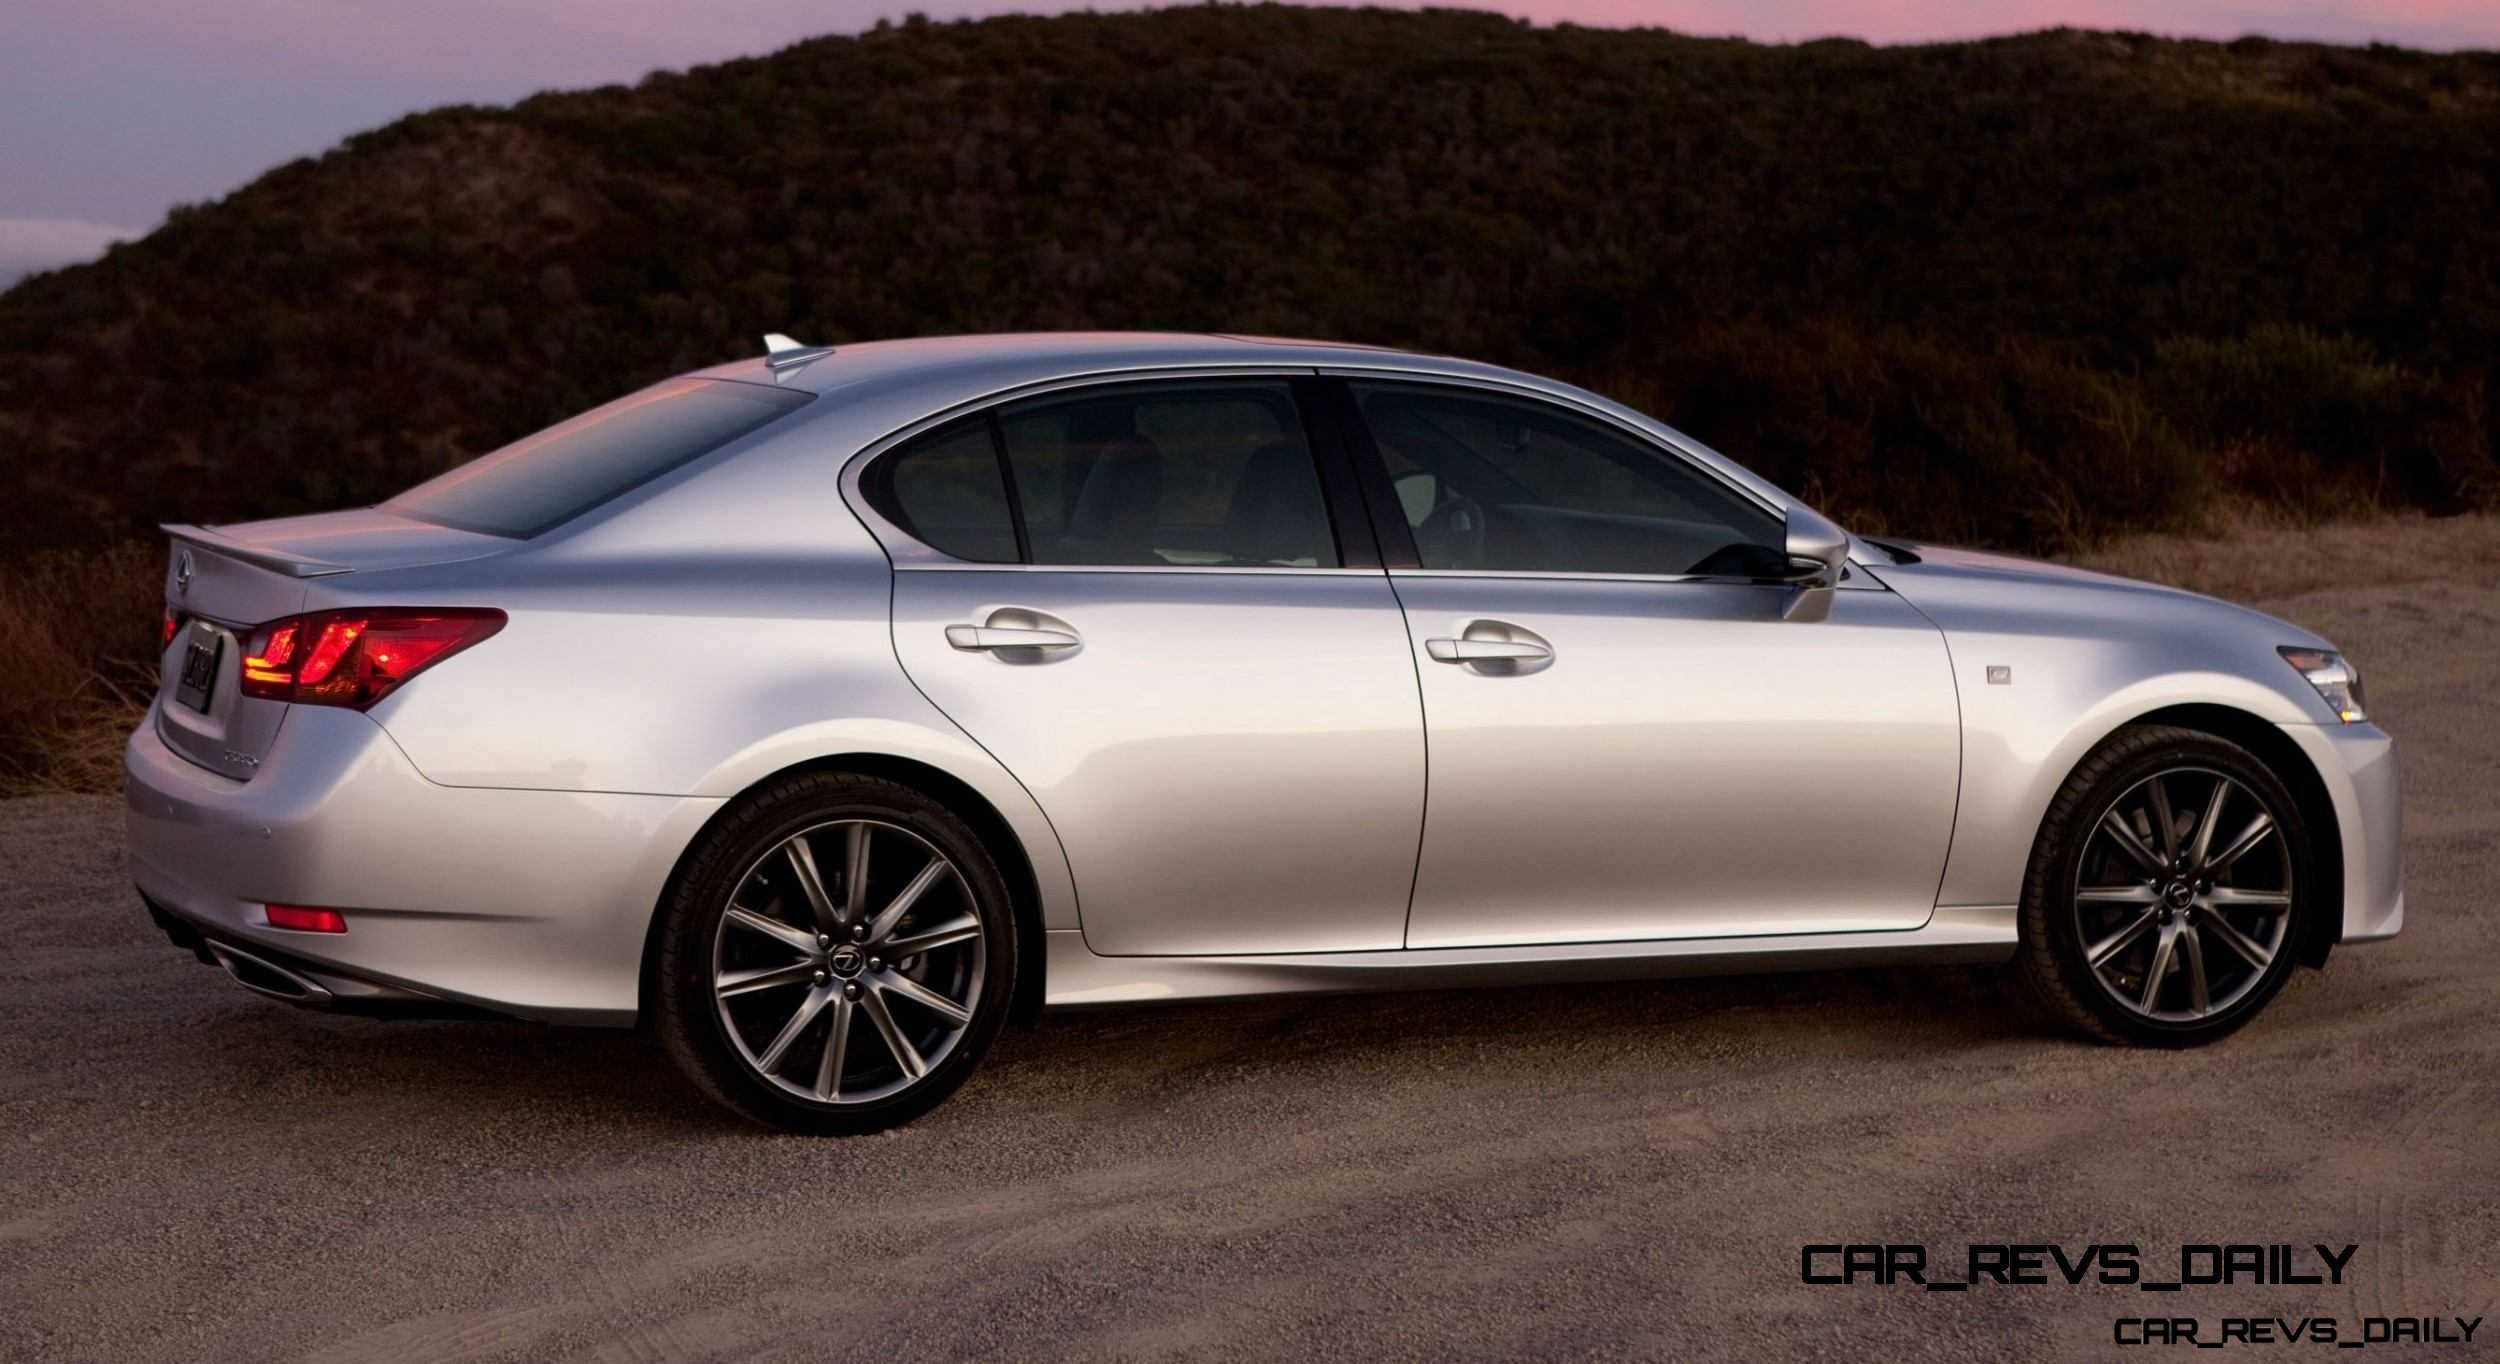 2014 lexus gs350 and gs f sport buyers guide info 12. Black Bedroom Furniture Sets. Home Design Ideas